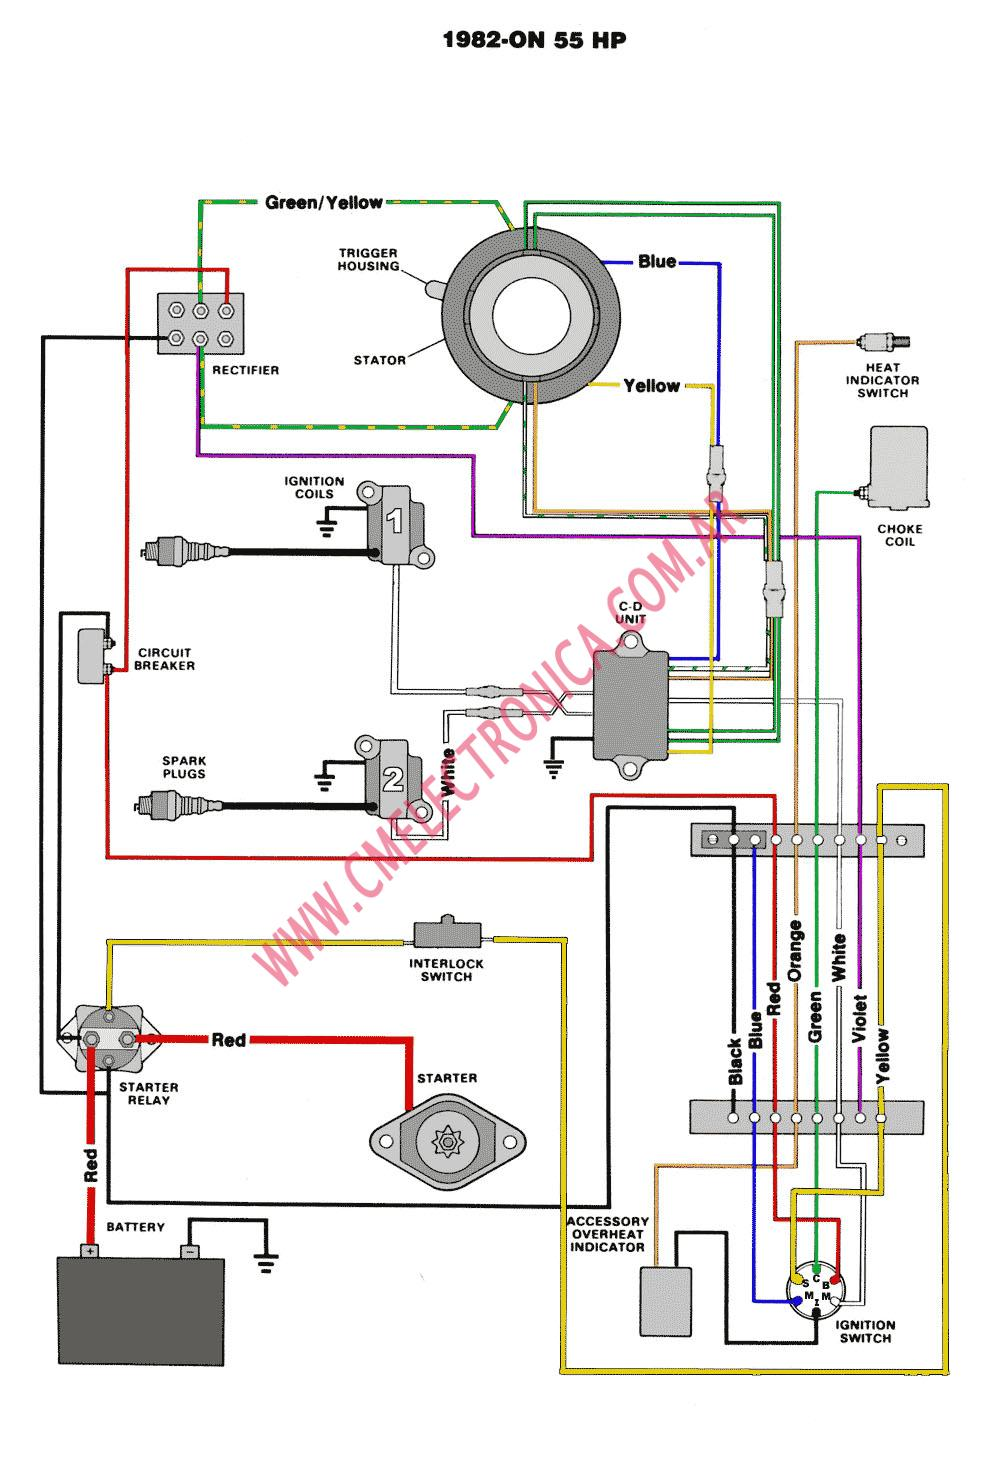 2002 yamaha grizzly wiring diagram hpm ceiling fan cbr 600 for stator goldwing ~ elsalvadorla